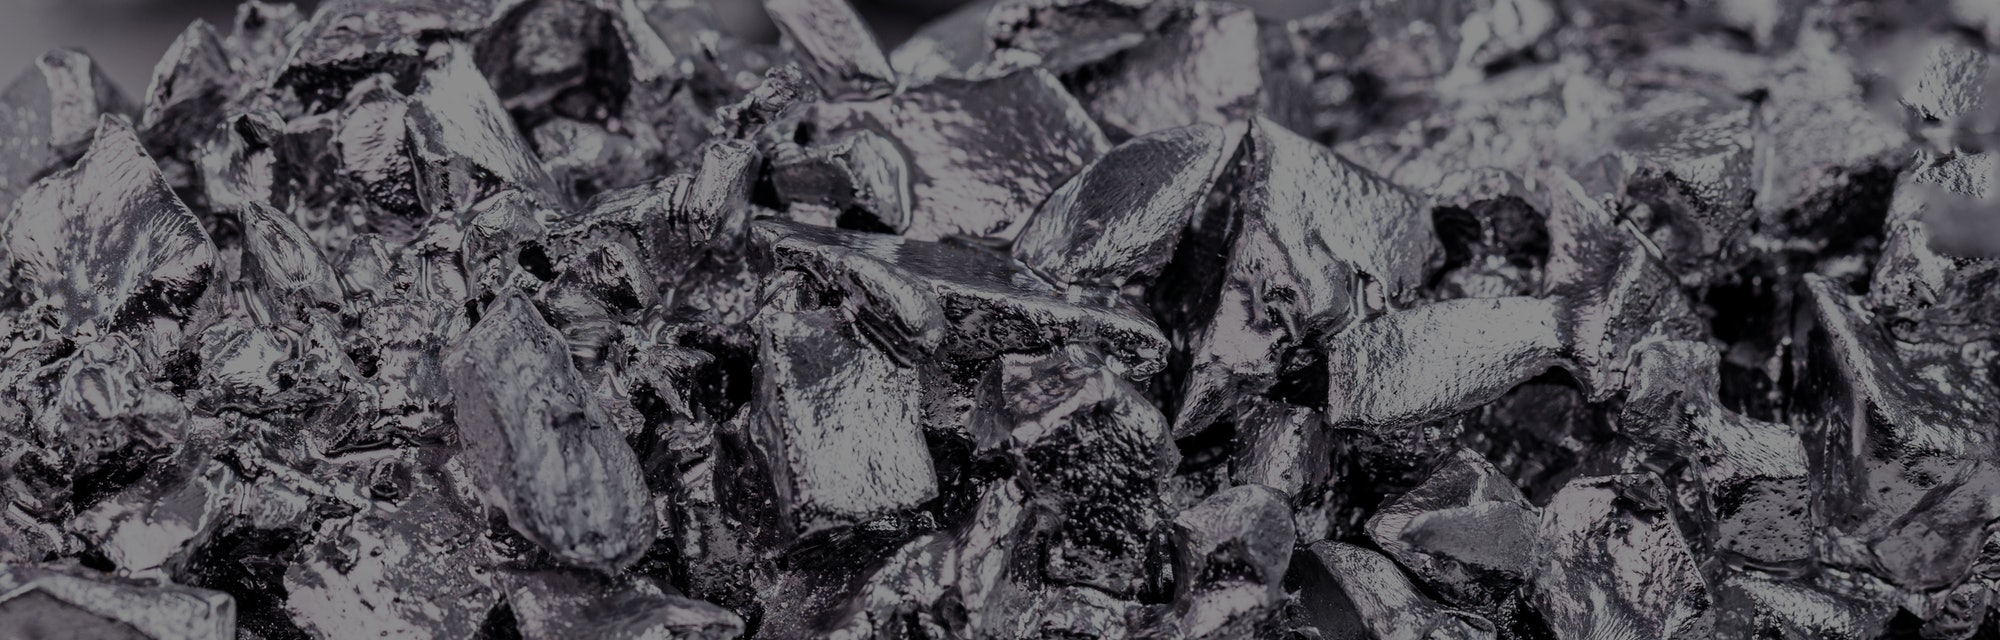 titanium metal alloy, used in the industry, titanium is a transition metal that adds value to metal ...